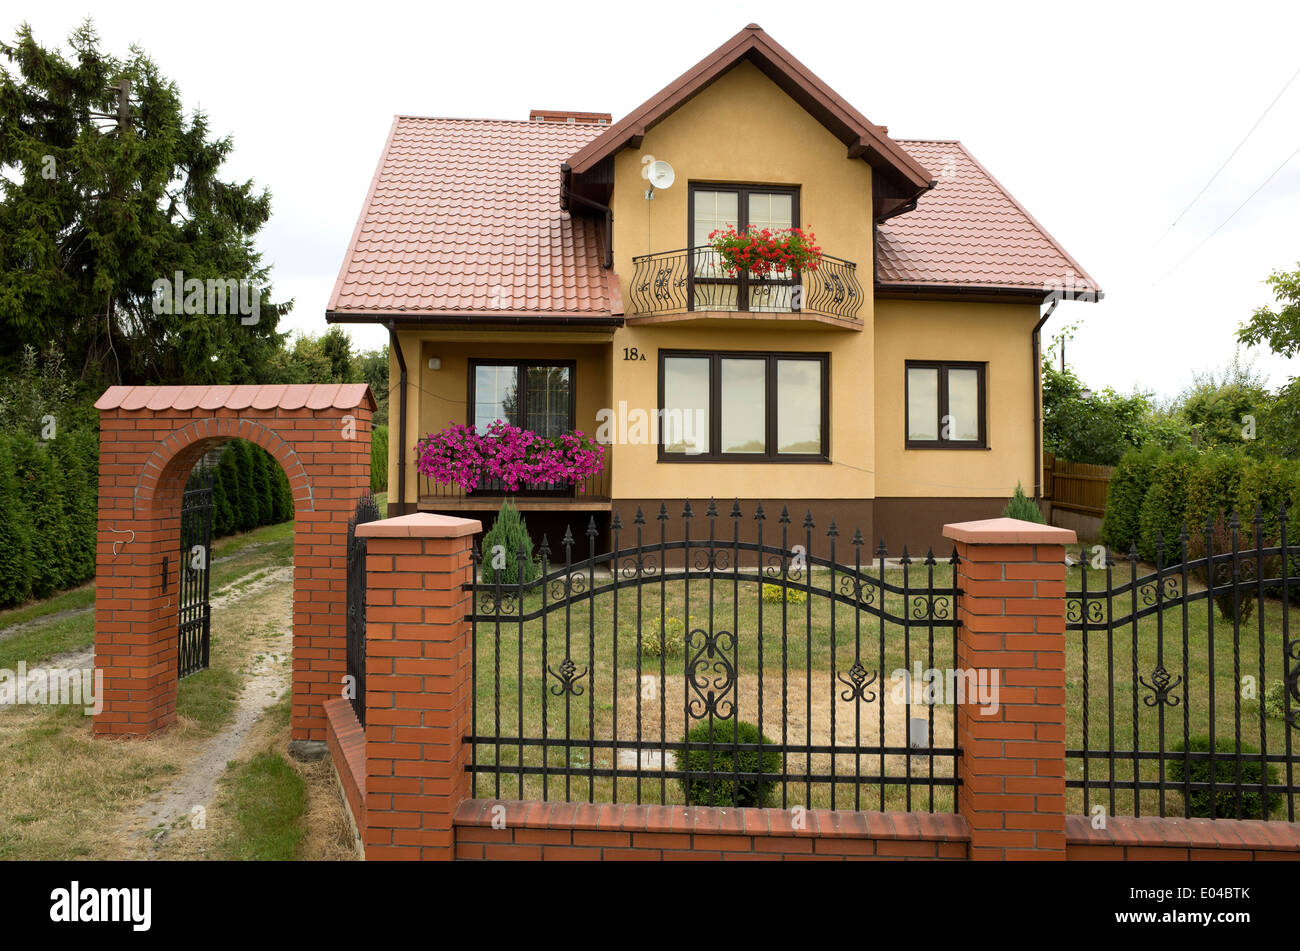 Modern Polish House With Wrought Iron Fence With Brick Pillars And Stock Photo Royalty Free